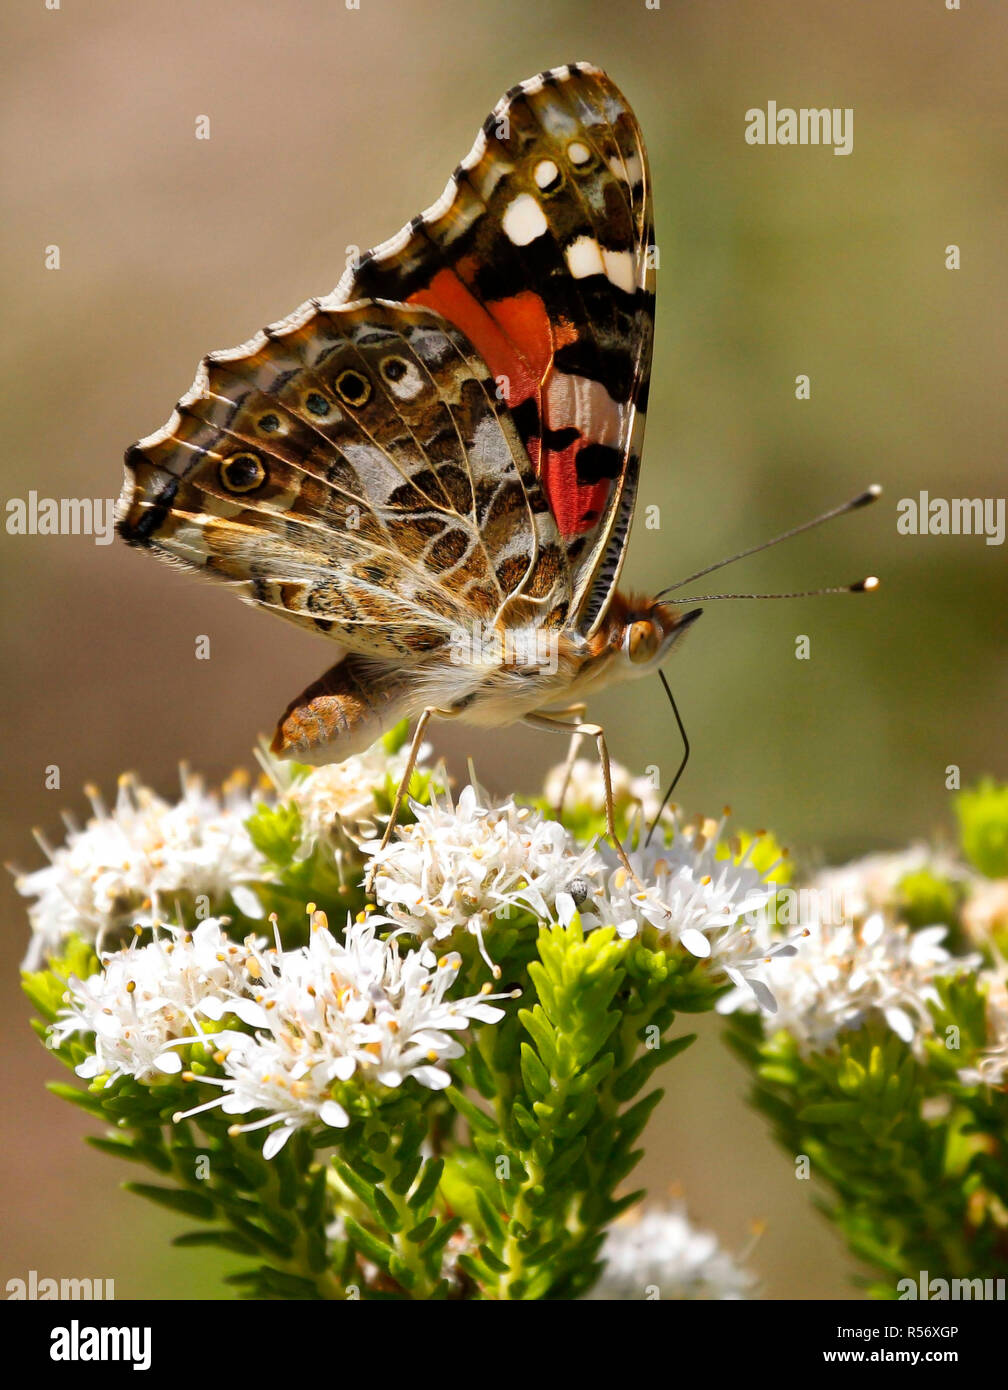 A painted lady butterfly feeding on flowers in Kirstenbosch National Botanical Garden in Cape Town. - Stock Image